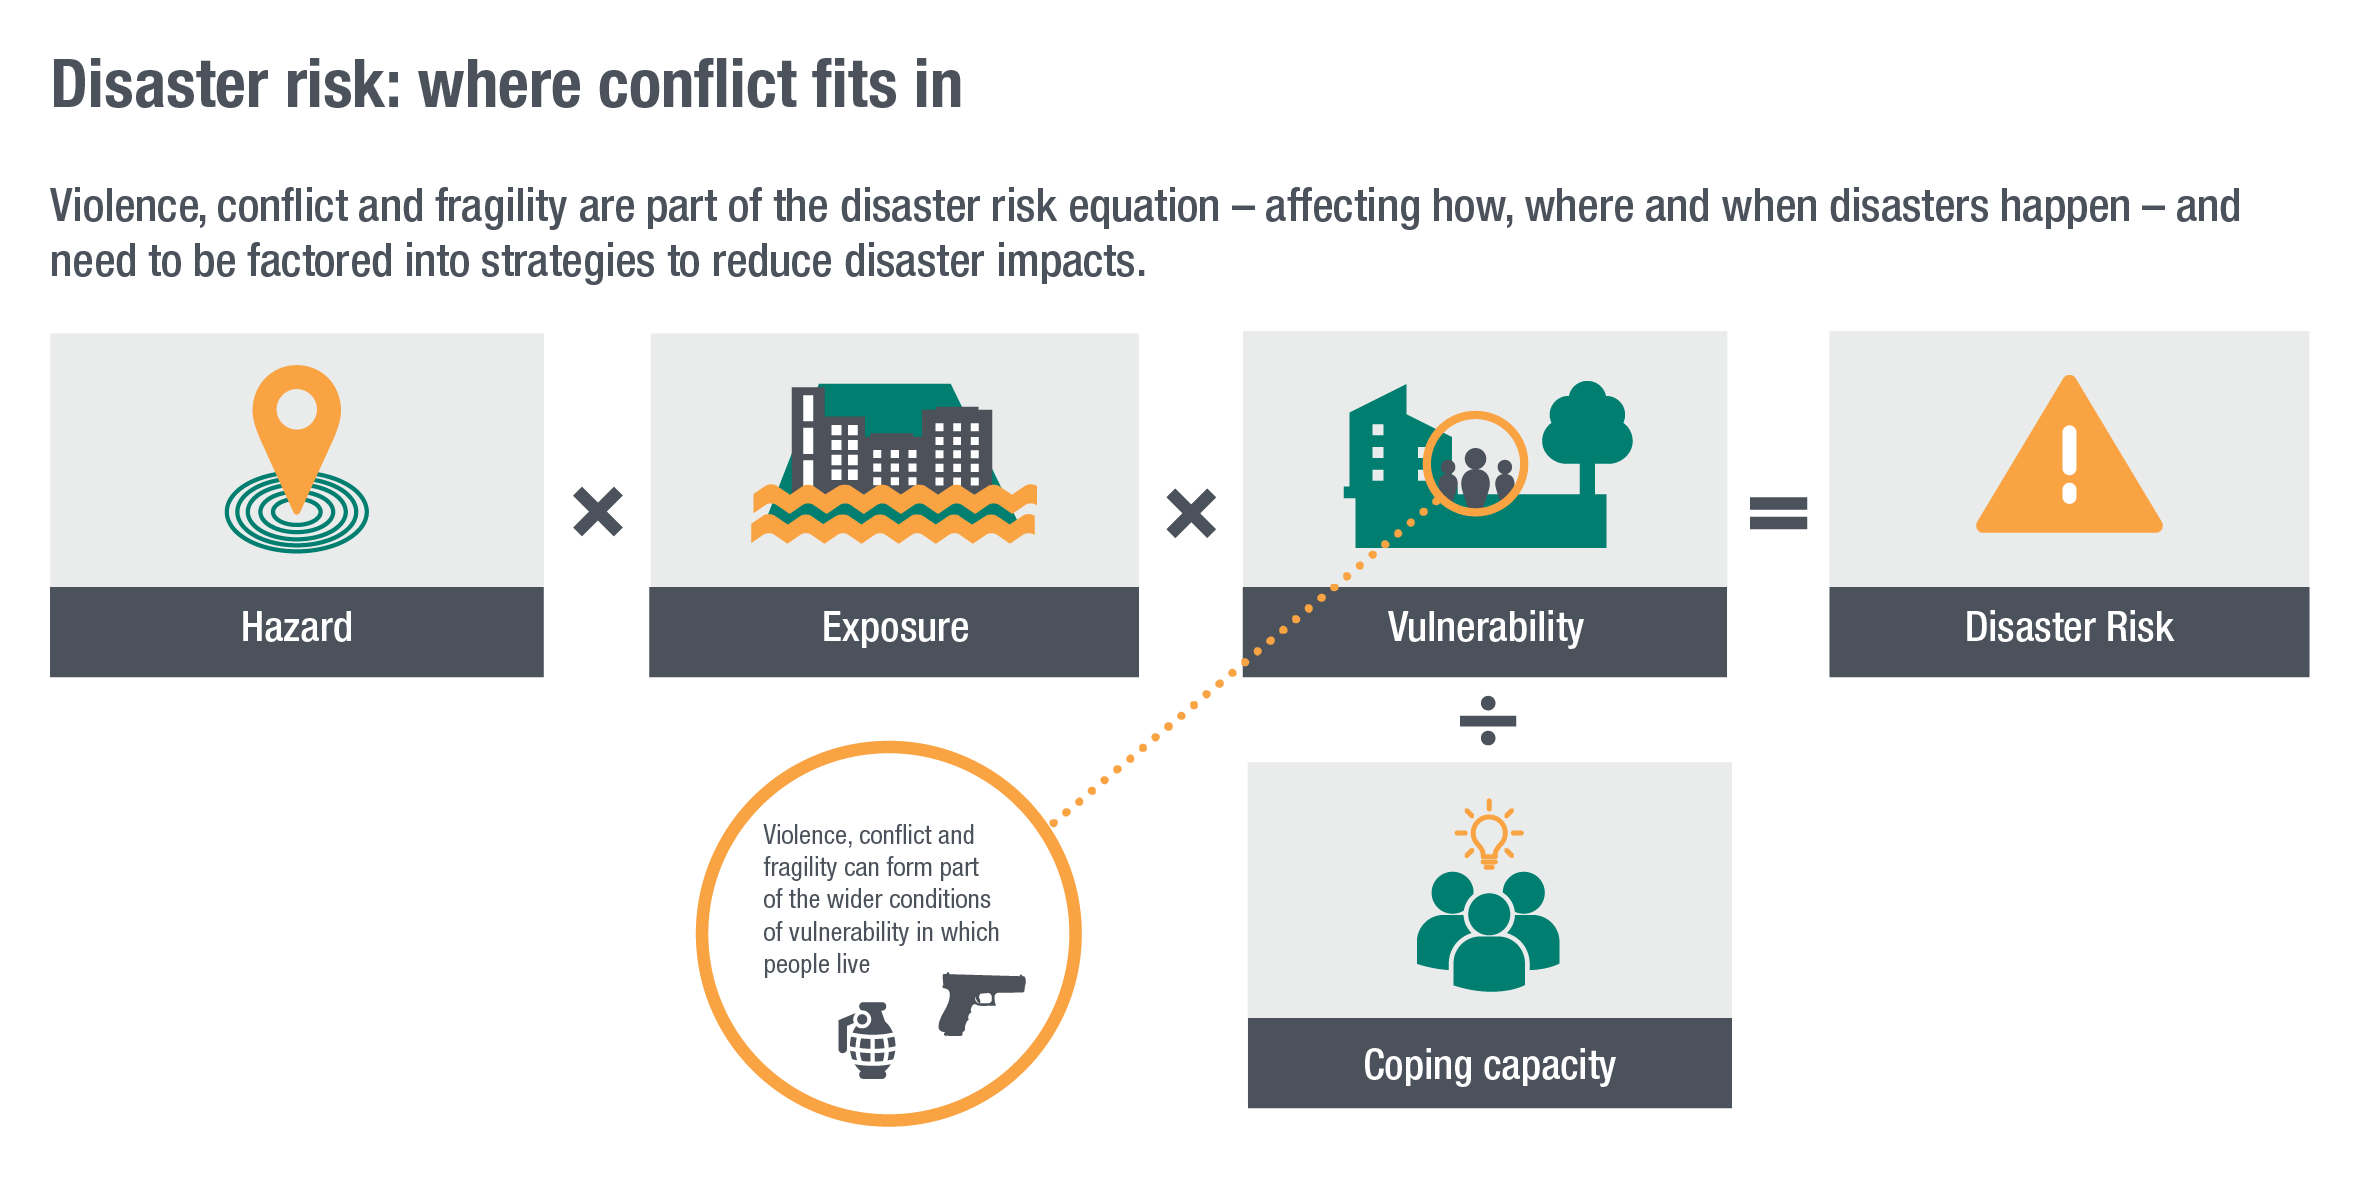 Disaster risk: where conflict fits in